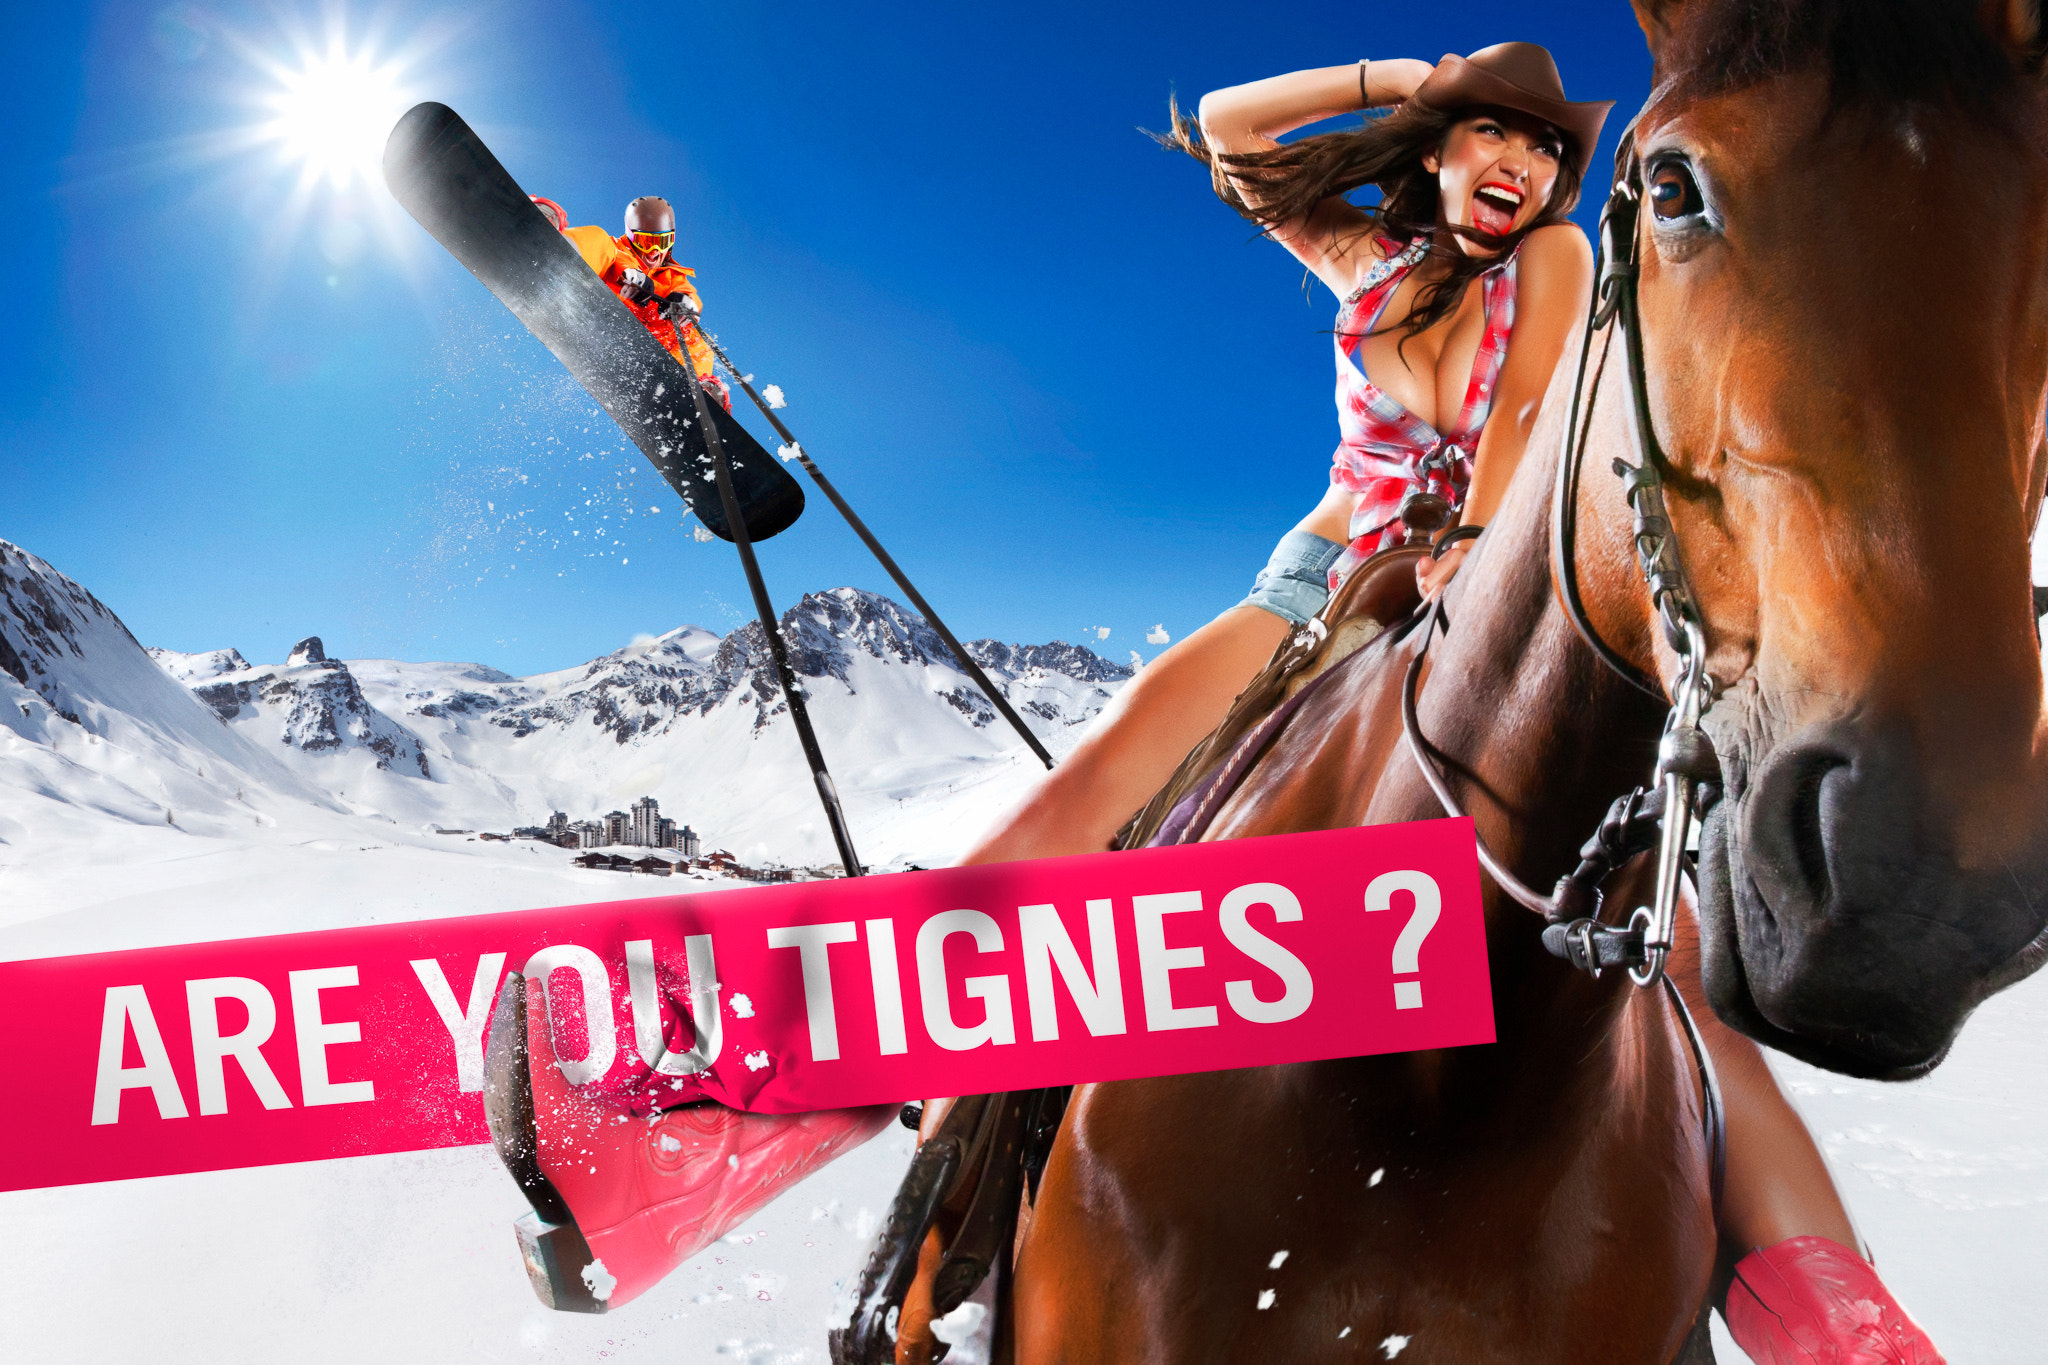 Photograph Tignes communication campaign 2010 - the horse and the snowboarder by Tristan Shu on 500px